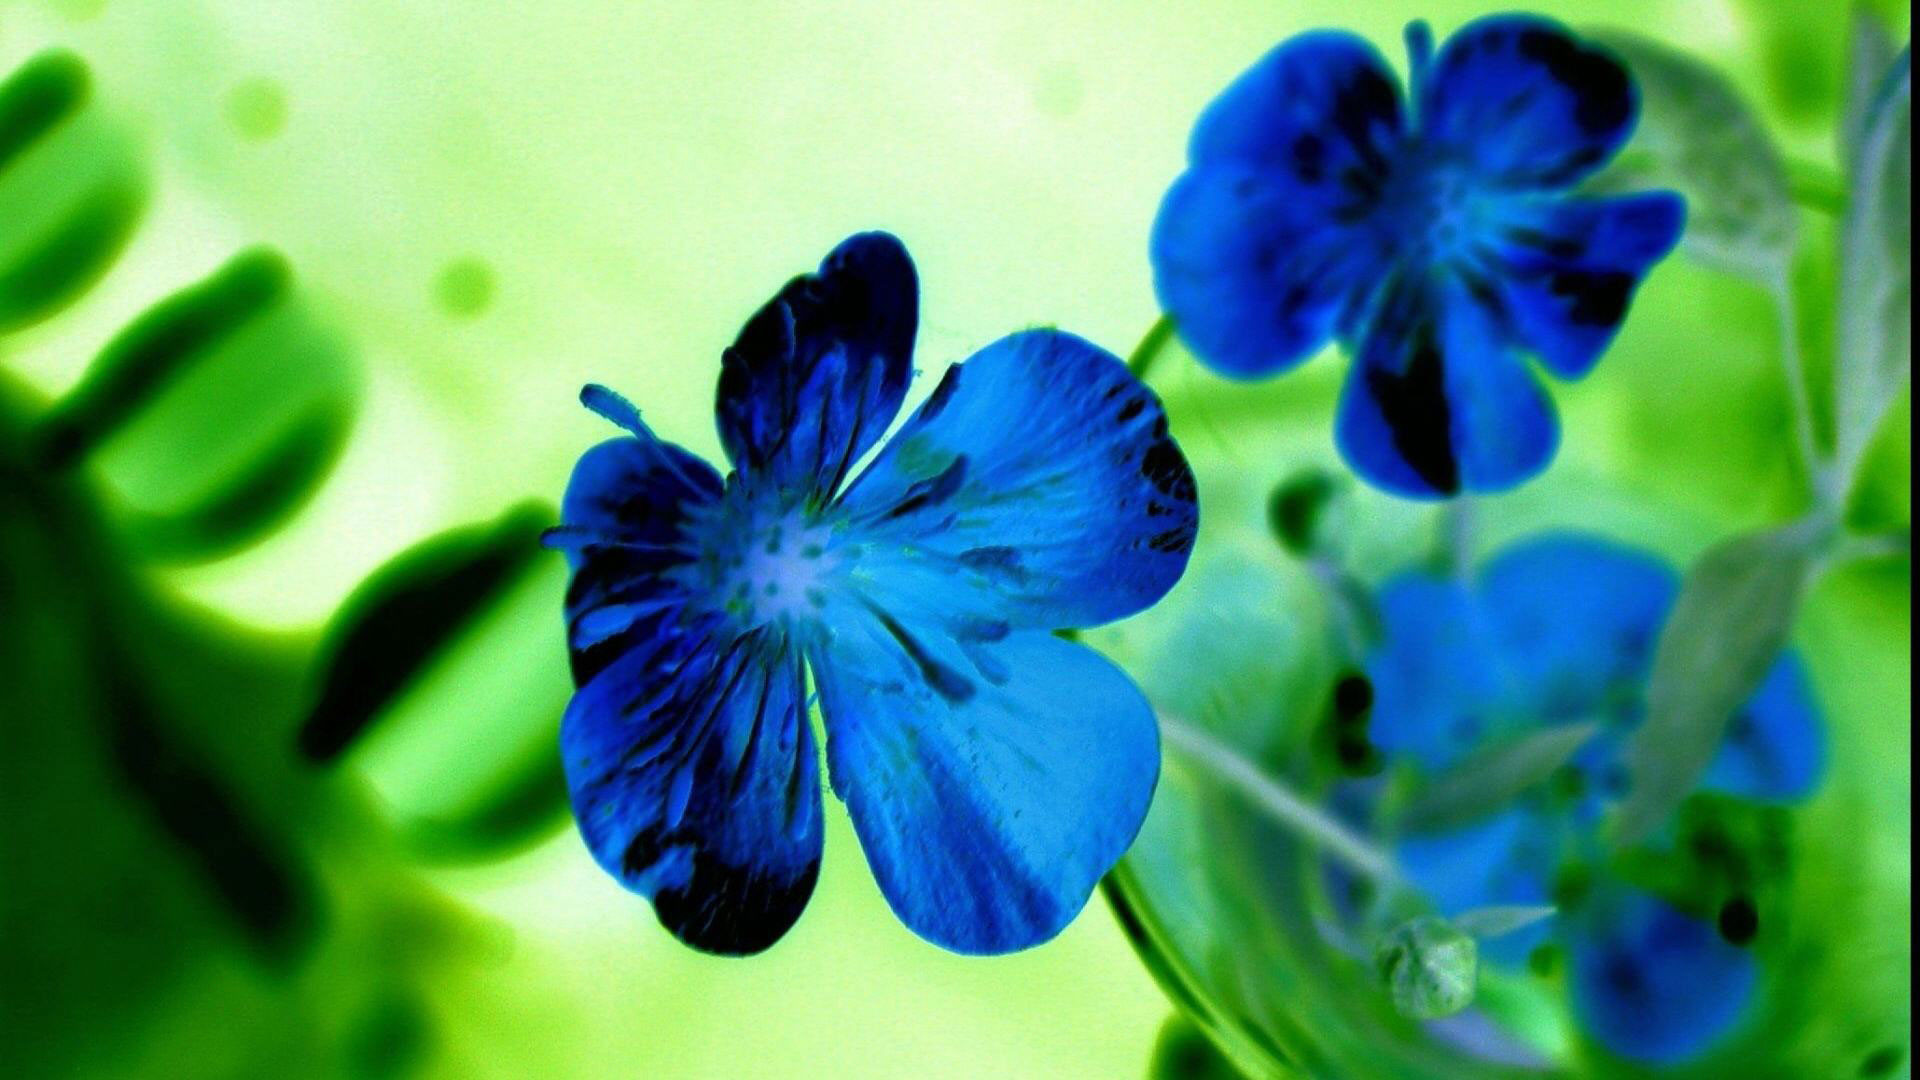 1920x1080 hd pics photos flowers blue green desktop background wallpaper